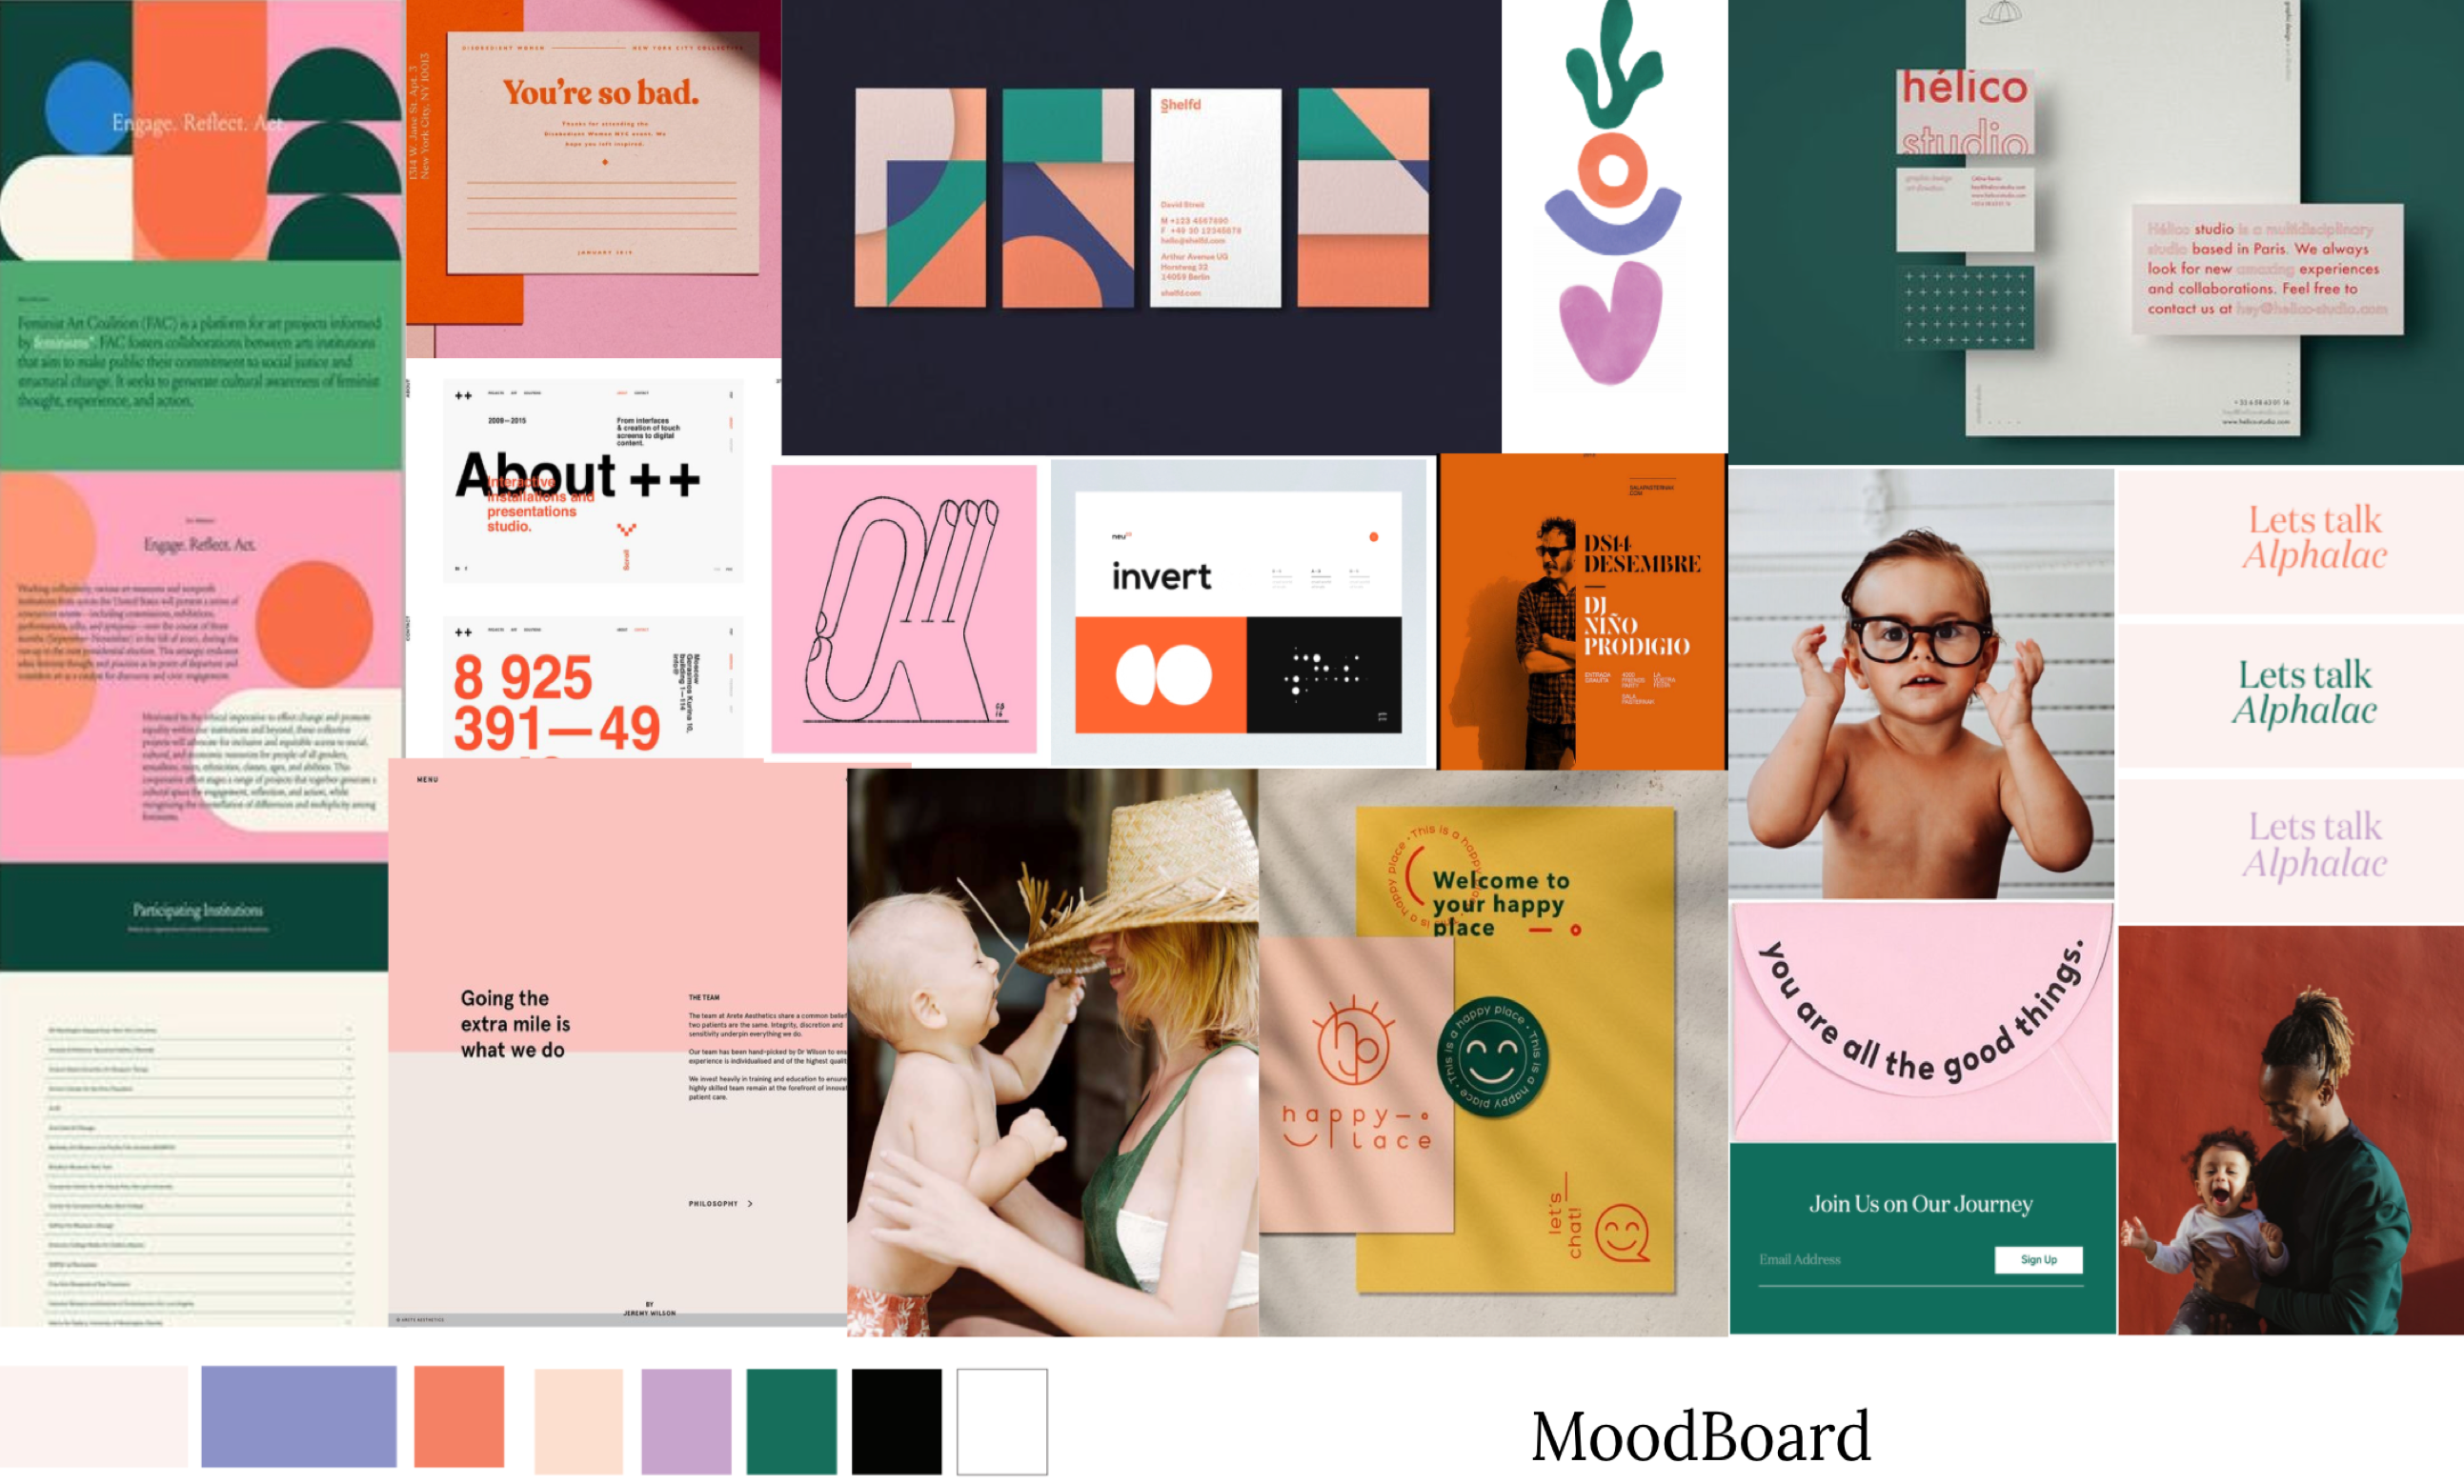 Moodboard for the ByHeart brand. Bright colors mixed with geometric shapes and lifestyle shots.